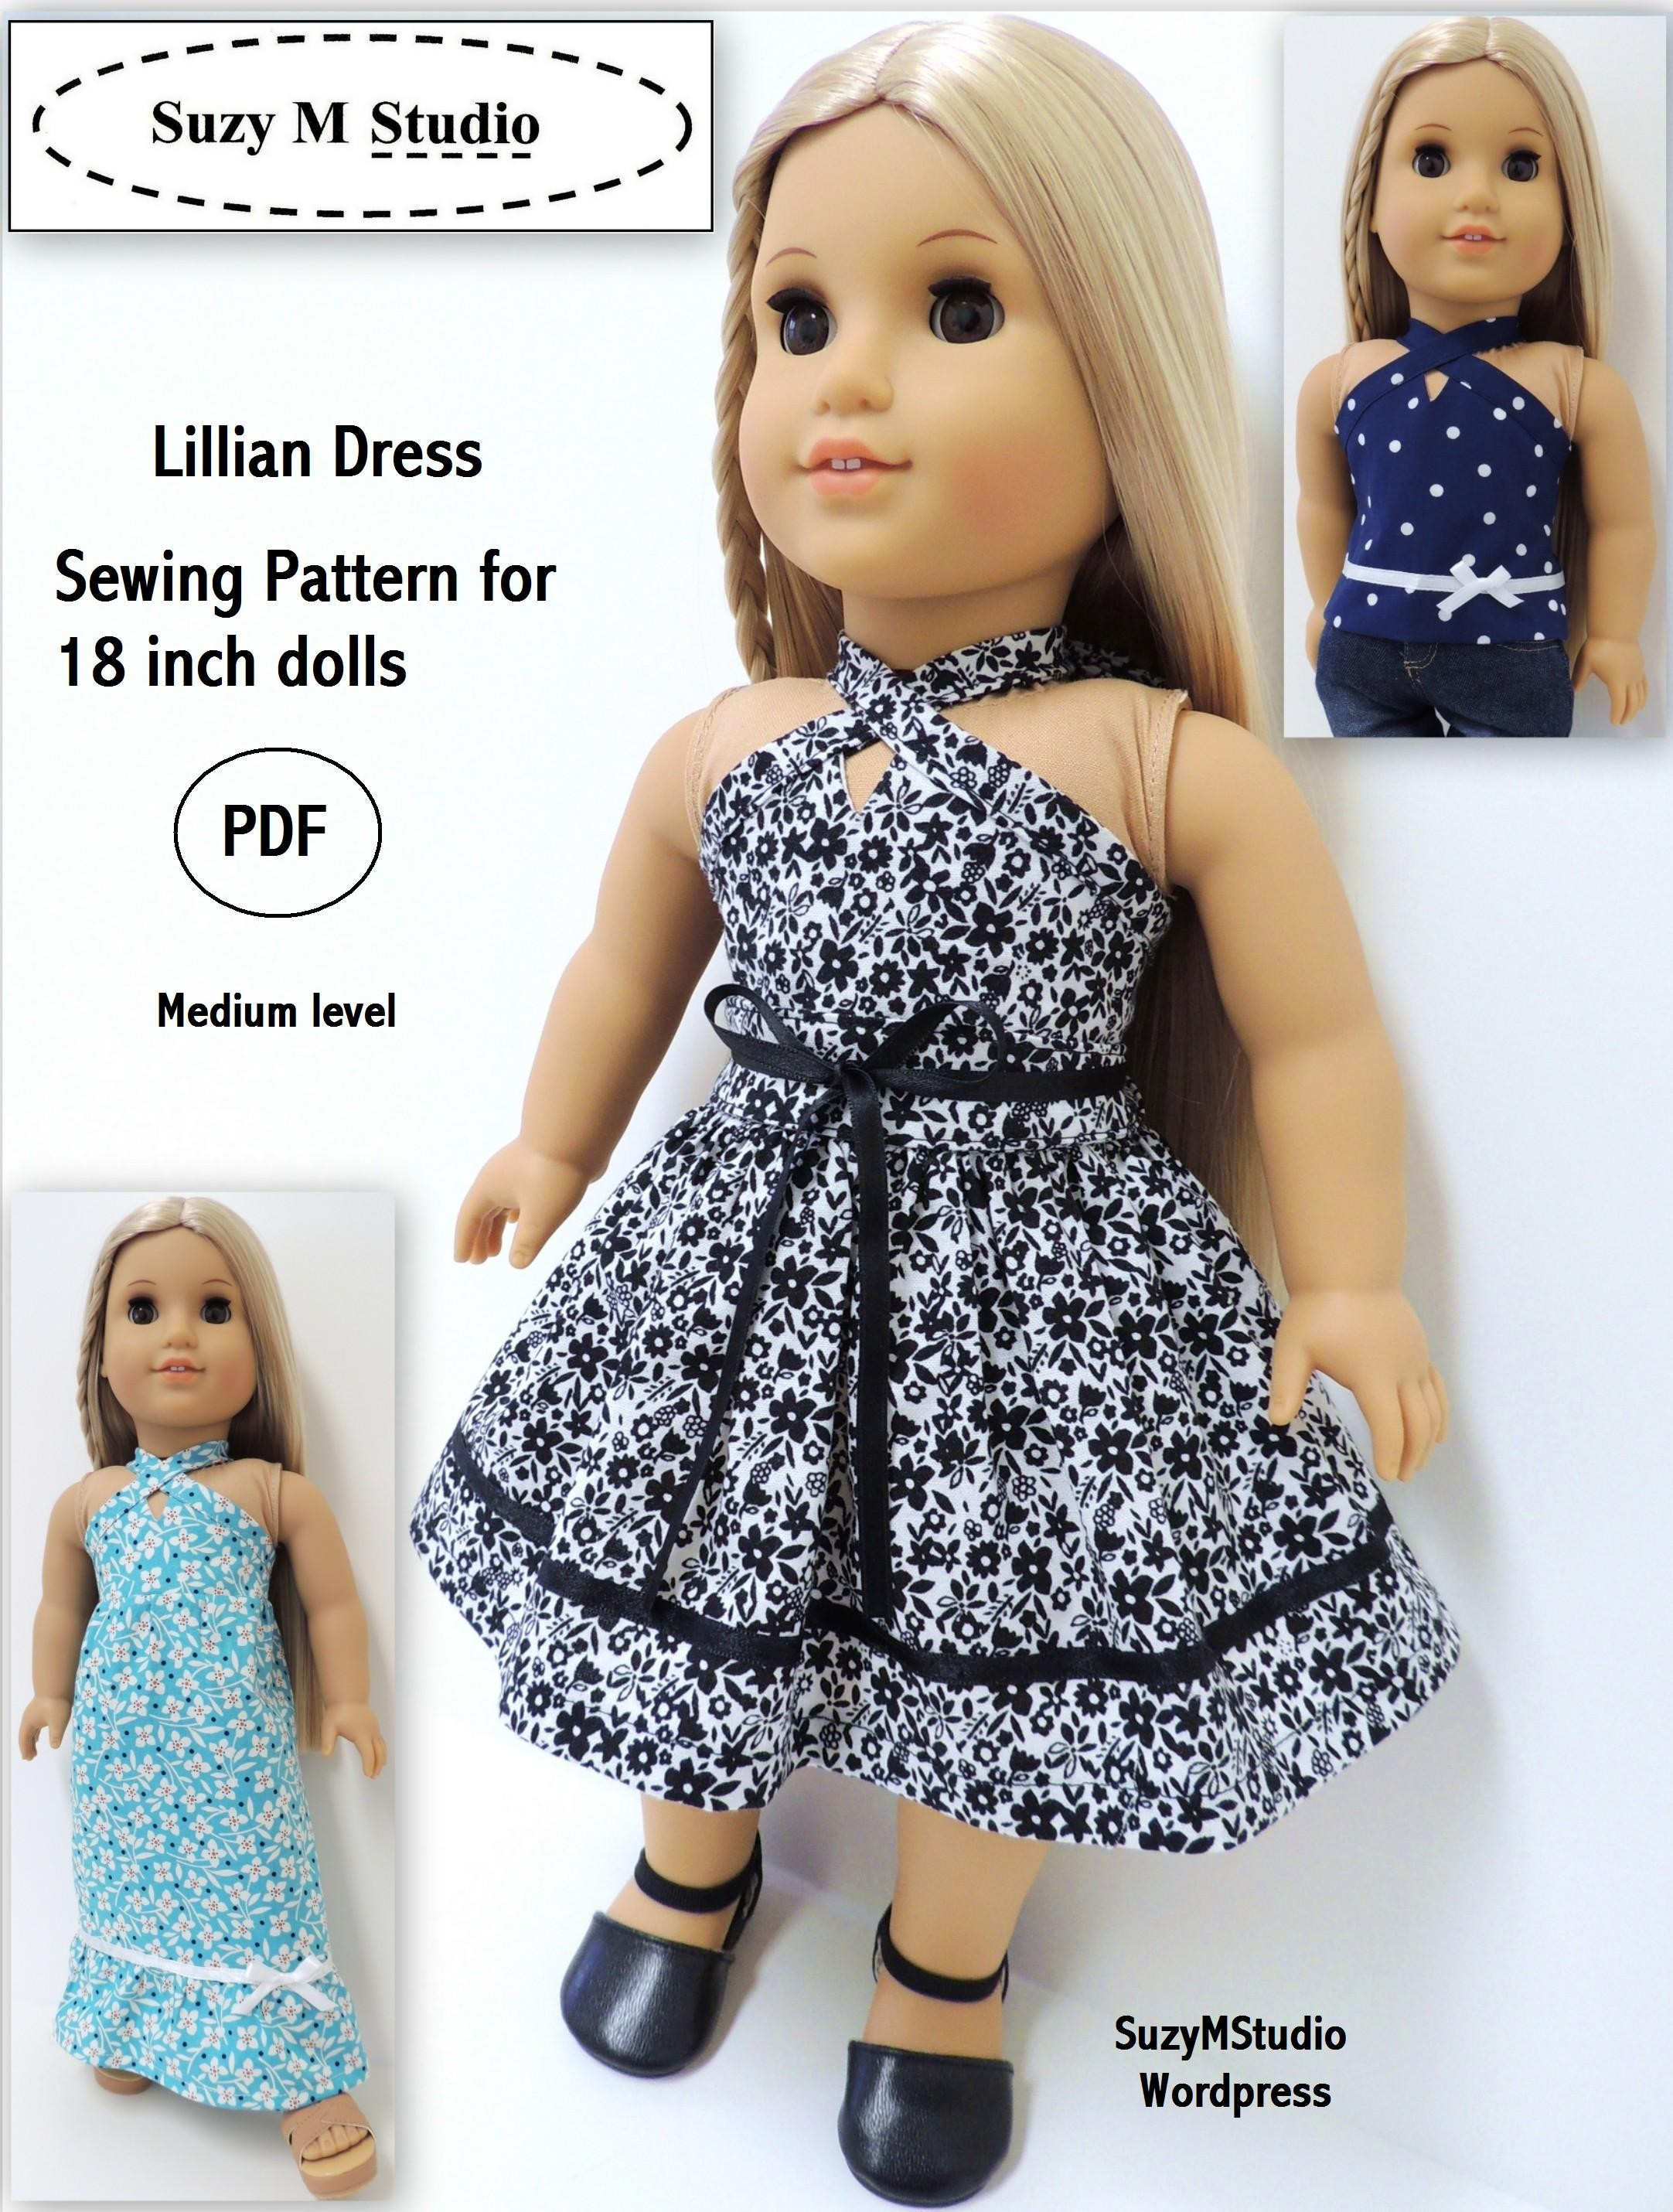 Free Crochet Patterns For American Girl Doll Clothes Lovely Cascade - Free Printable Crochet Doll Clothes Patterns For 18 Inch Dolls